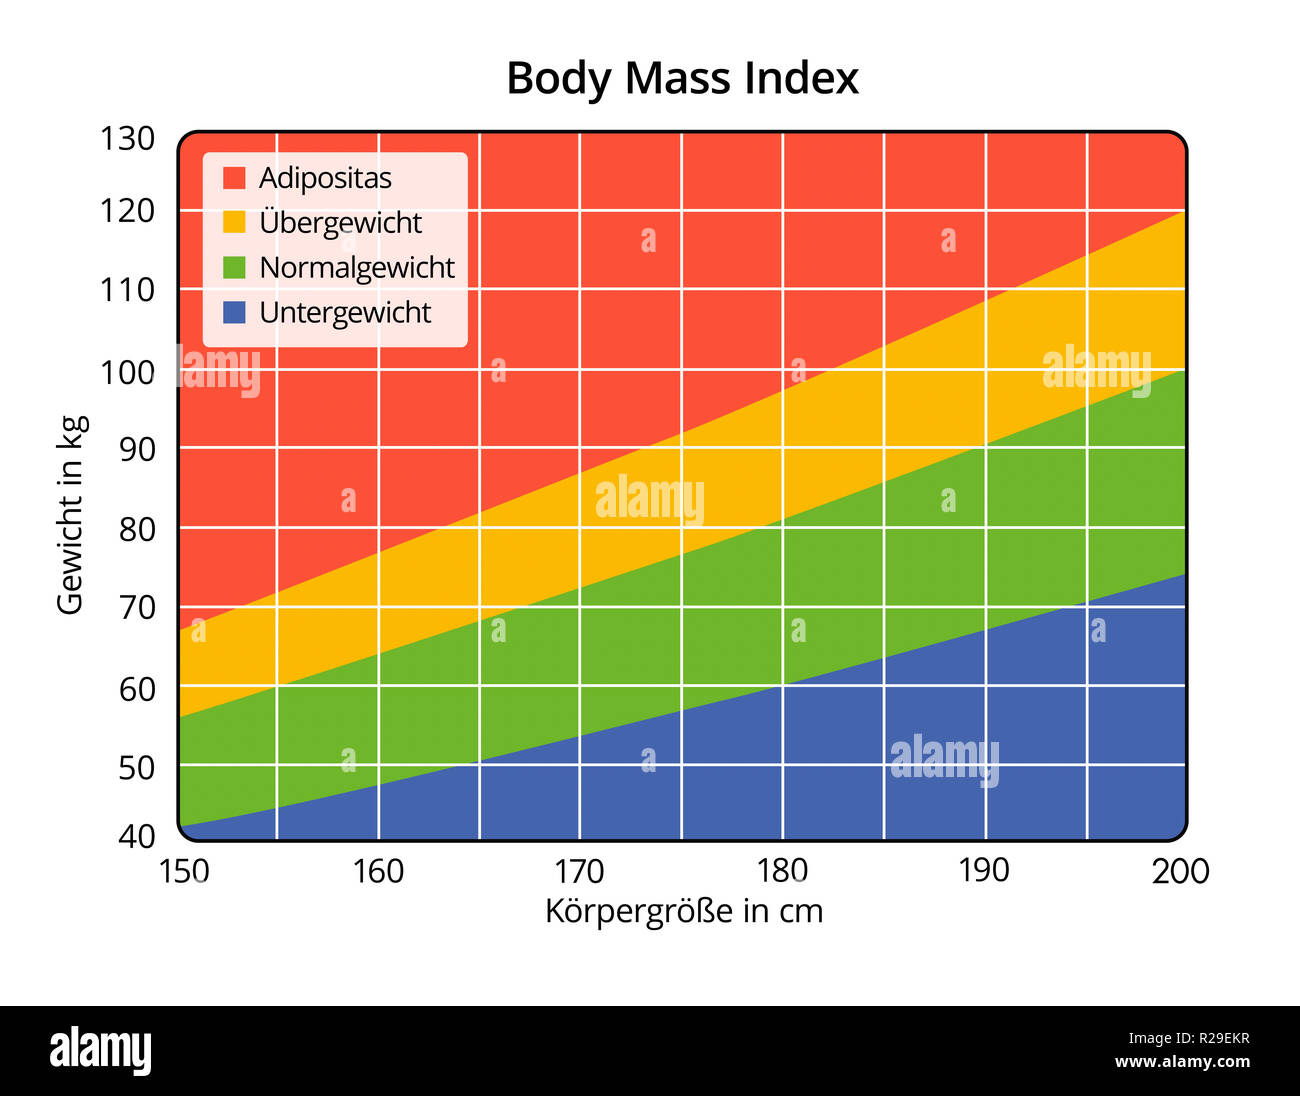 Body Mass Index Chart High Resolution Stock Photography and Images ...